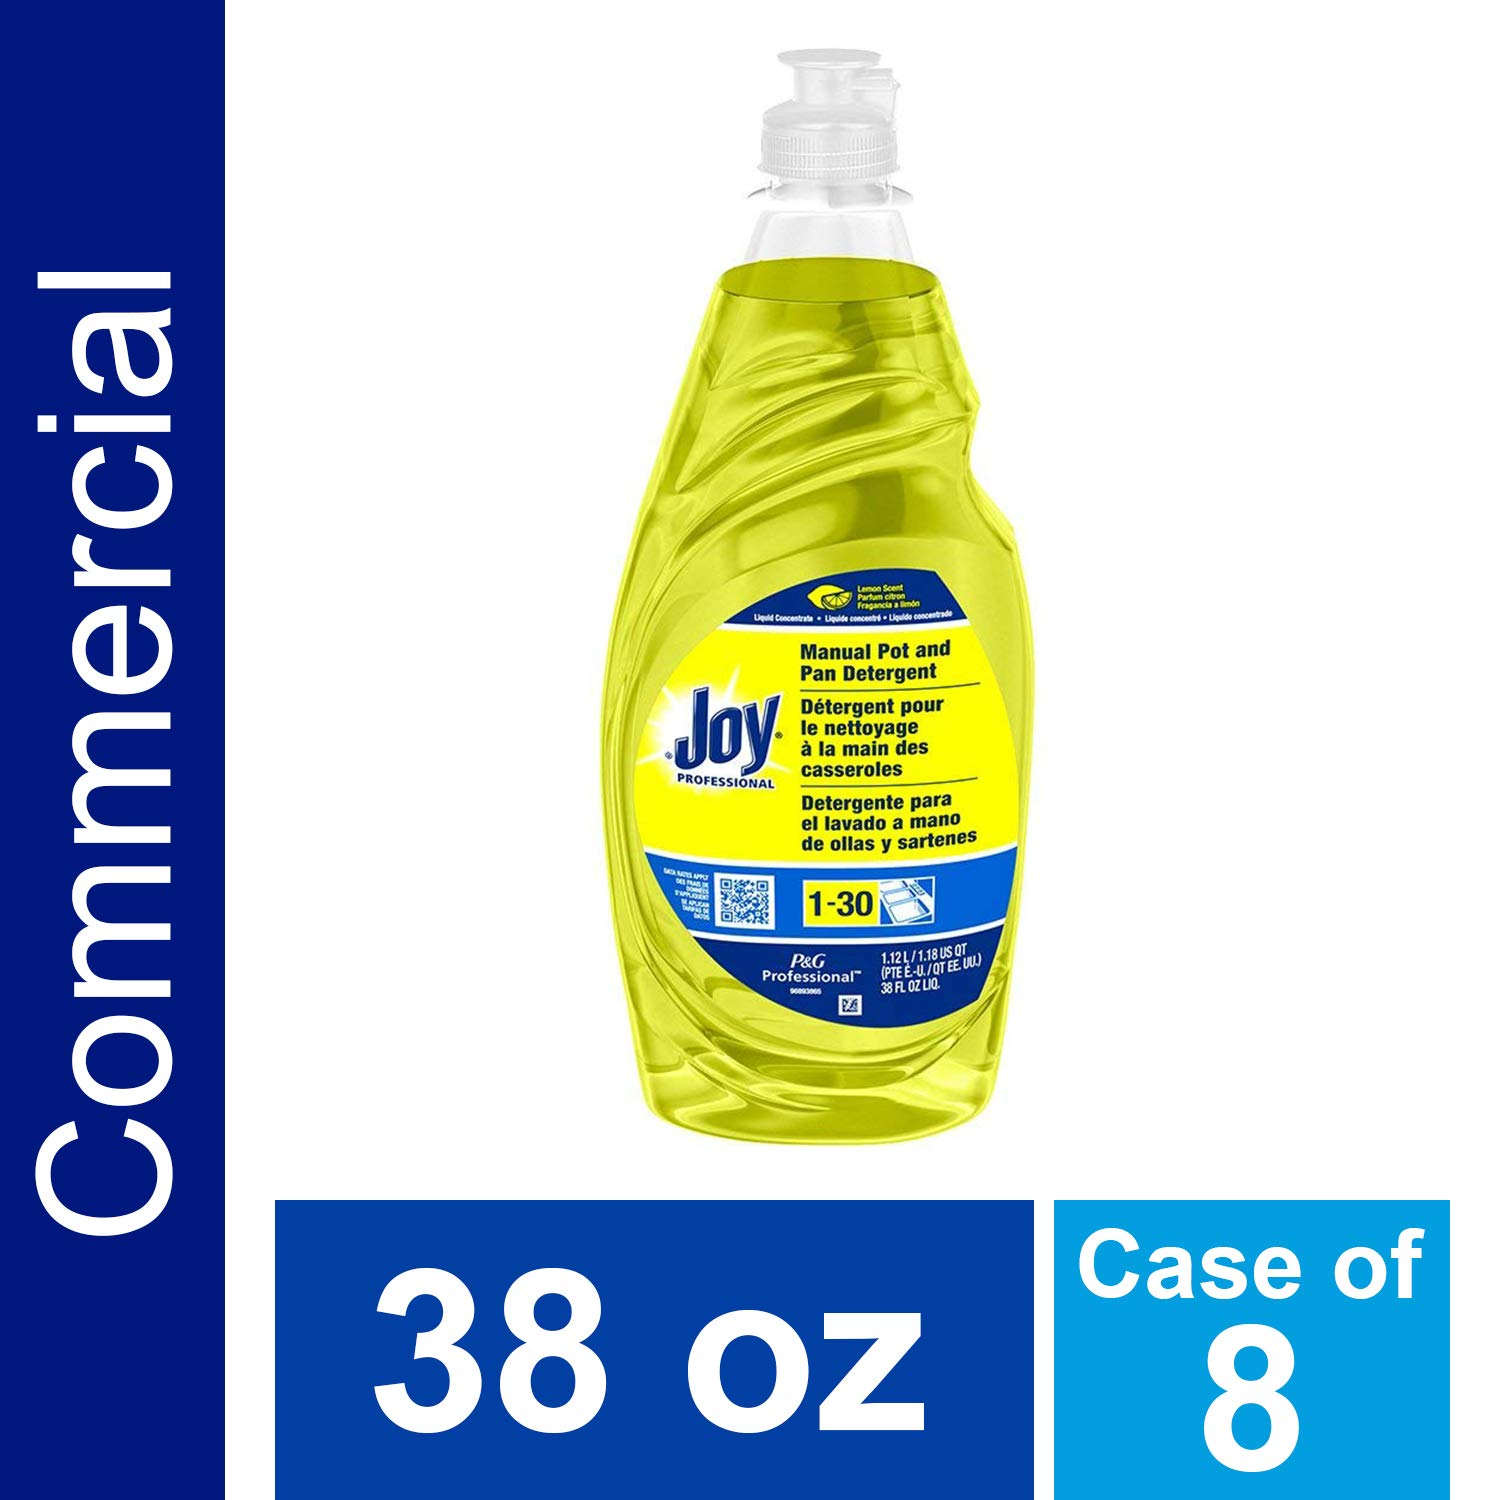 Dishwashing Detergent Degreaser from Joy Professional, Bulk Pot, Pan and Dish Liquid Soap for Commercial Restauran Kitchen Uses, Lemon Scent, 38 oz. (Case of 8)